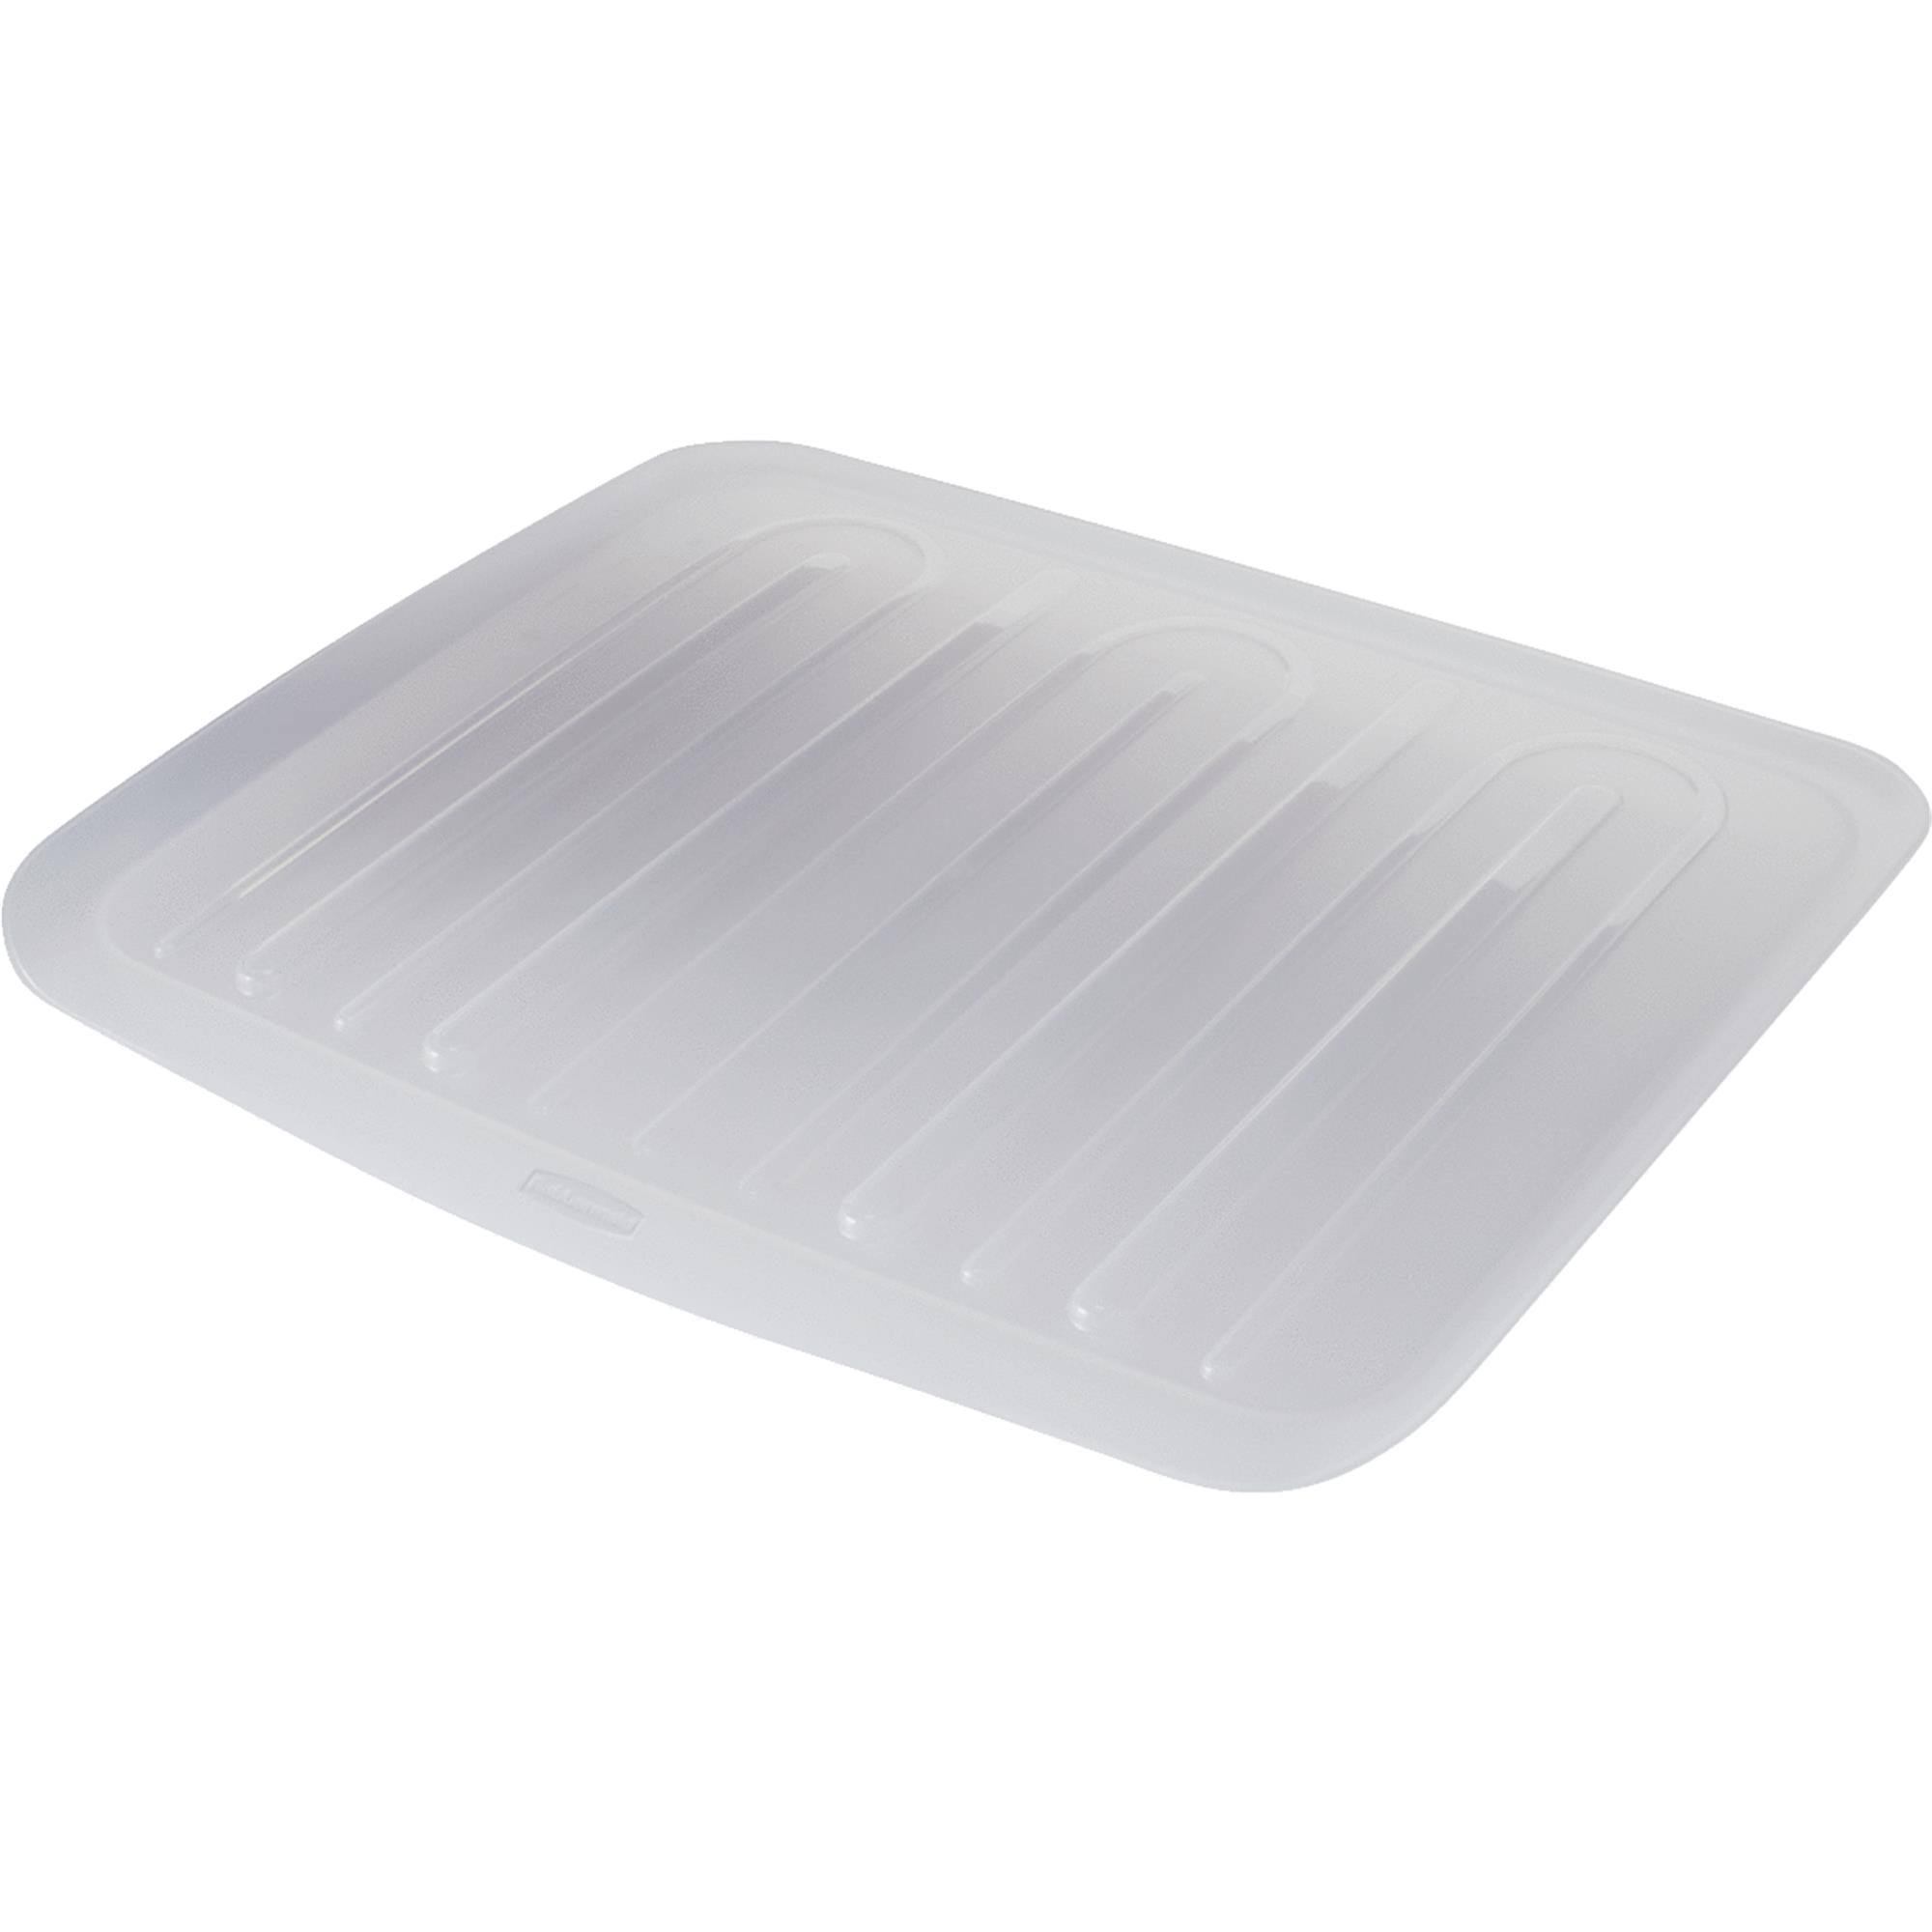 Rubbermaid Dish Drainer Tray - Clear, Large